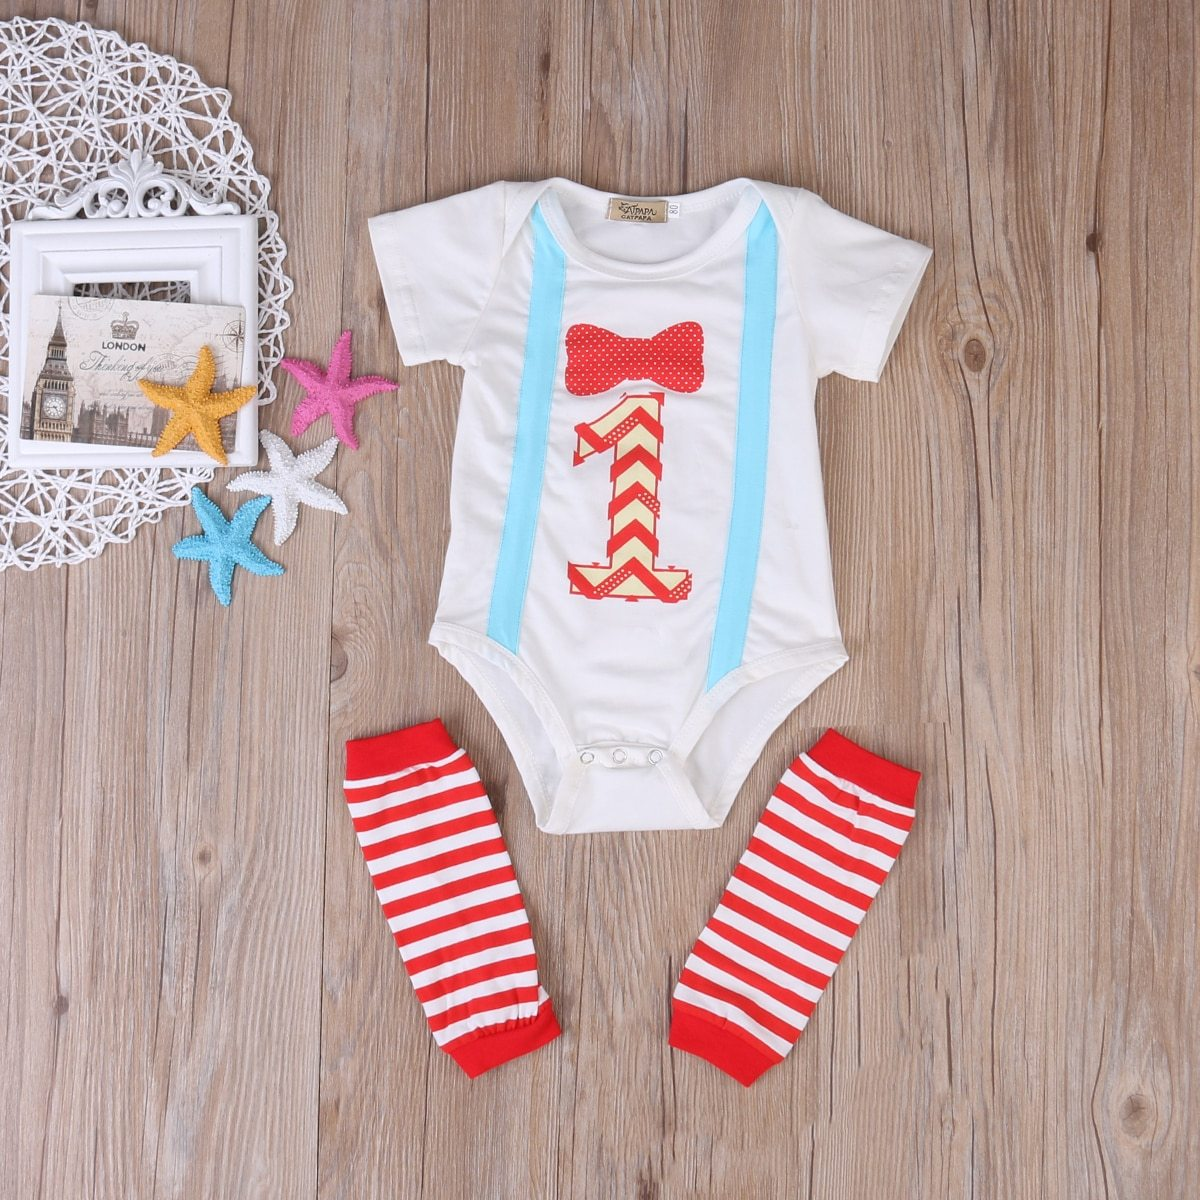 First Birthday Baby Boys Girl Cotton Romper Leg Warmer Bodysuit 2pcs Outfitsdresskily-dresskily